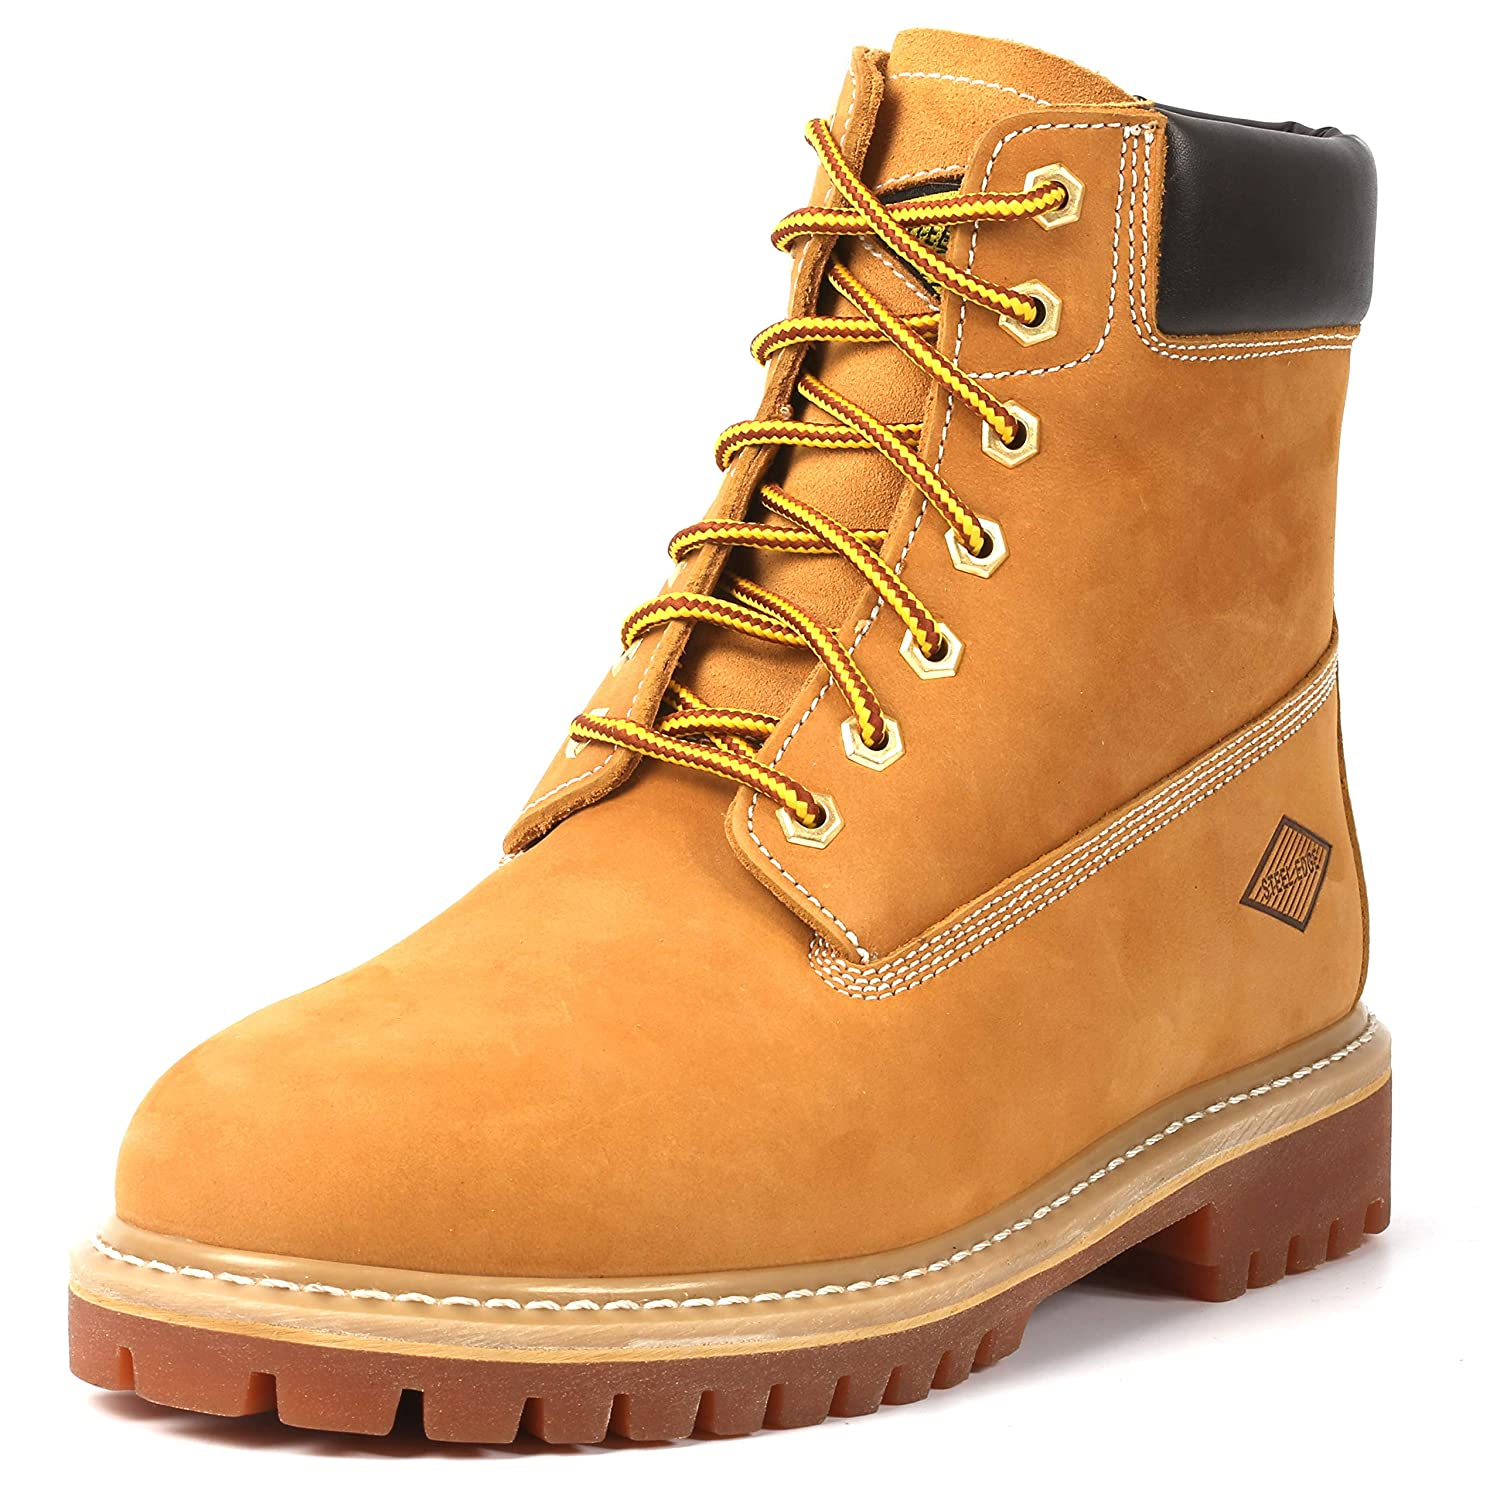 6� Stylish Casual Wear Soft Toe Boots - Lace Up Style Work Boots - Slip And Oil Resistant Outsoles (13)